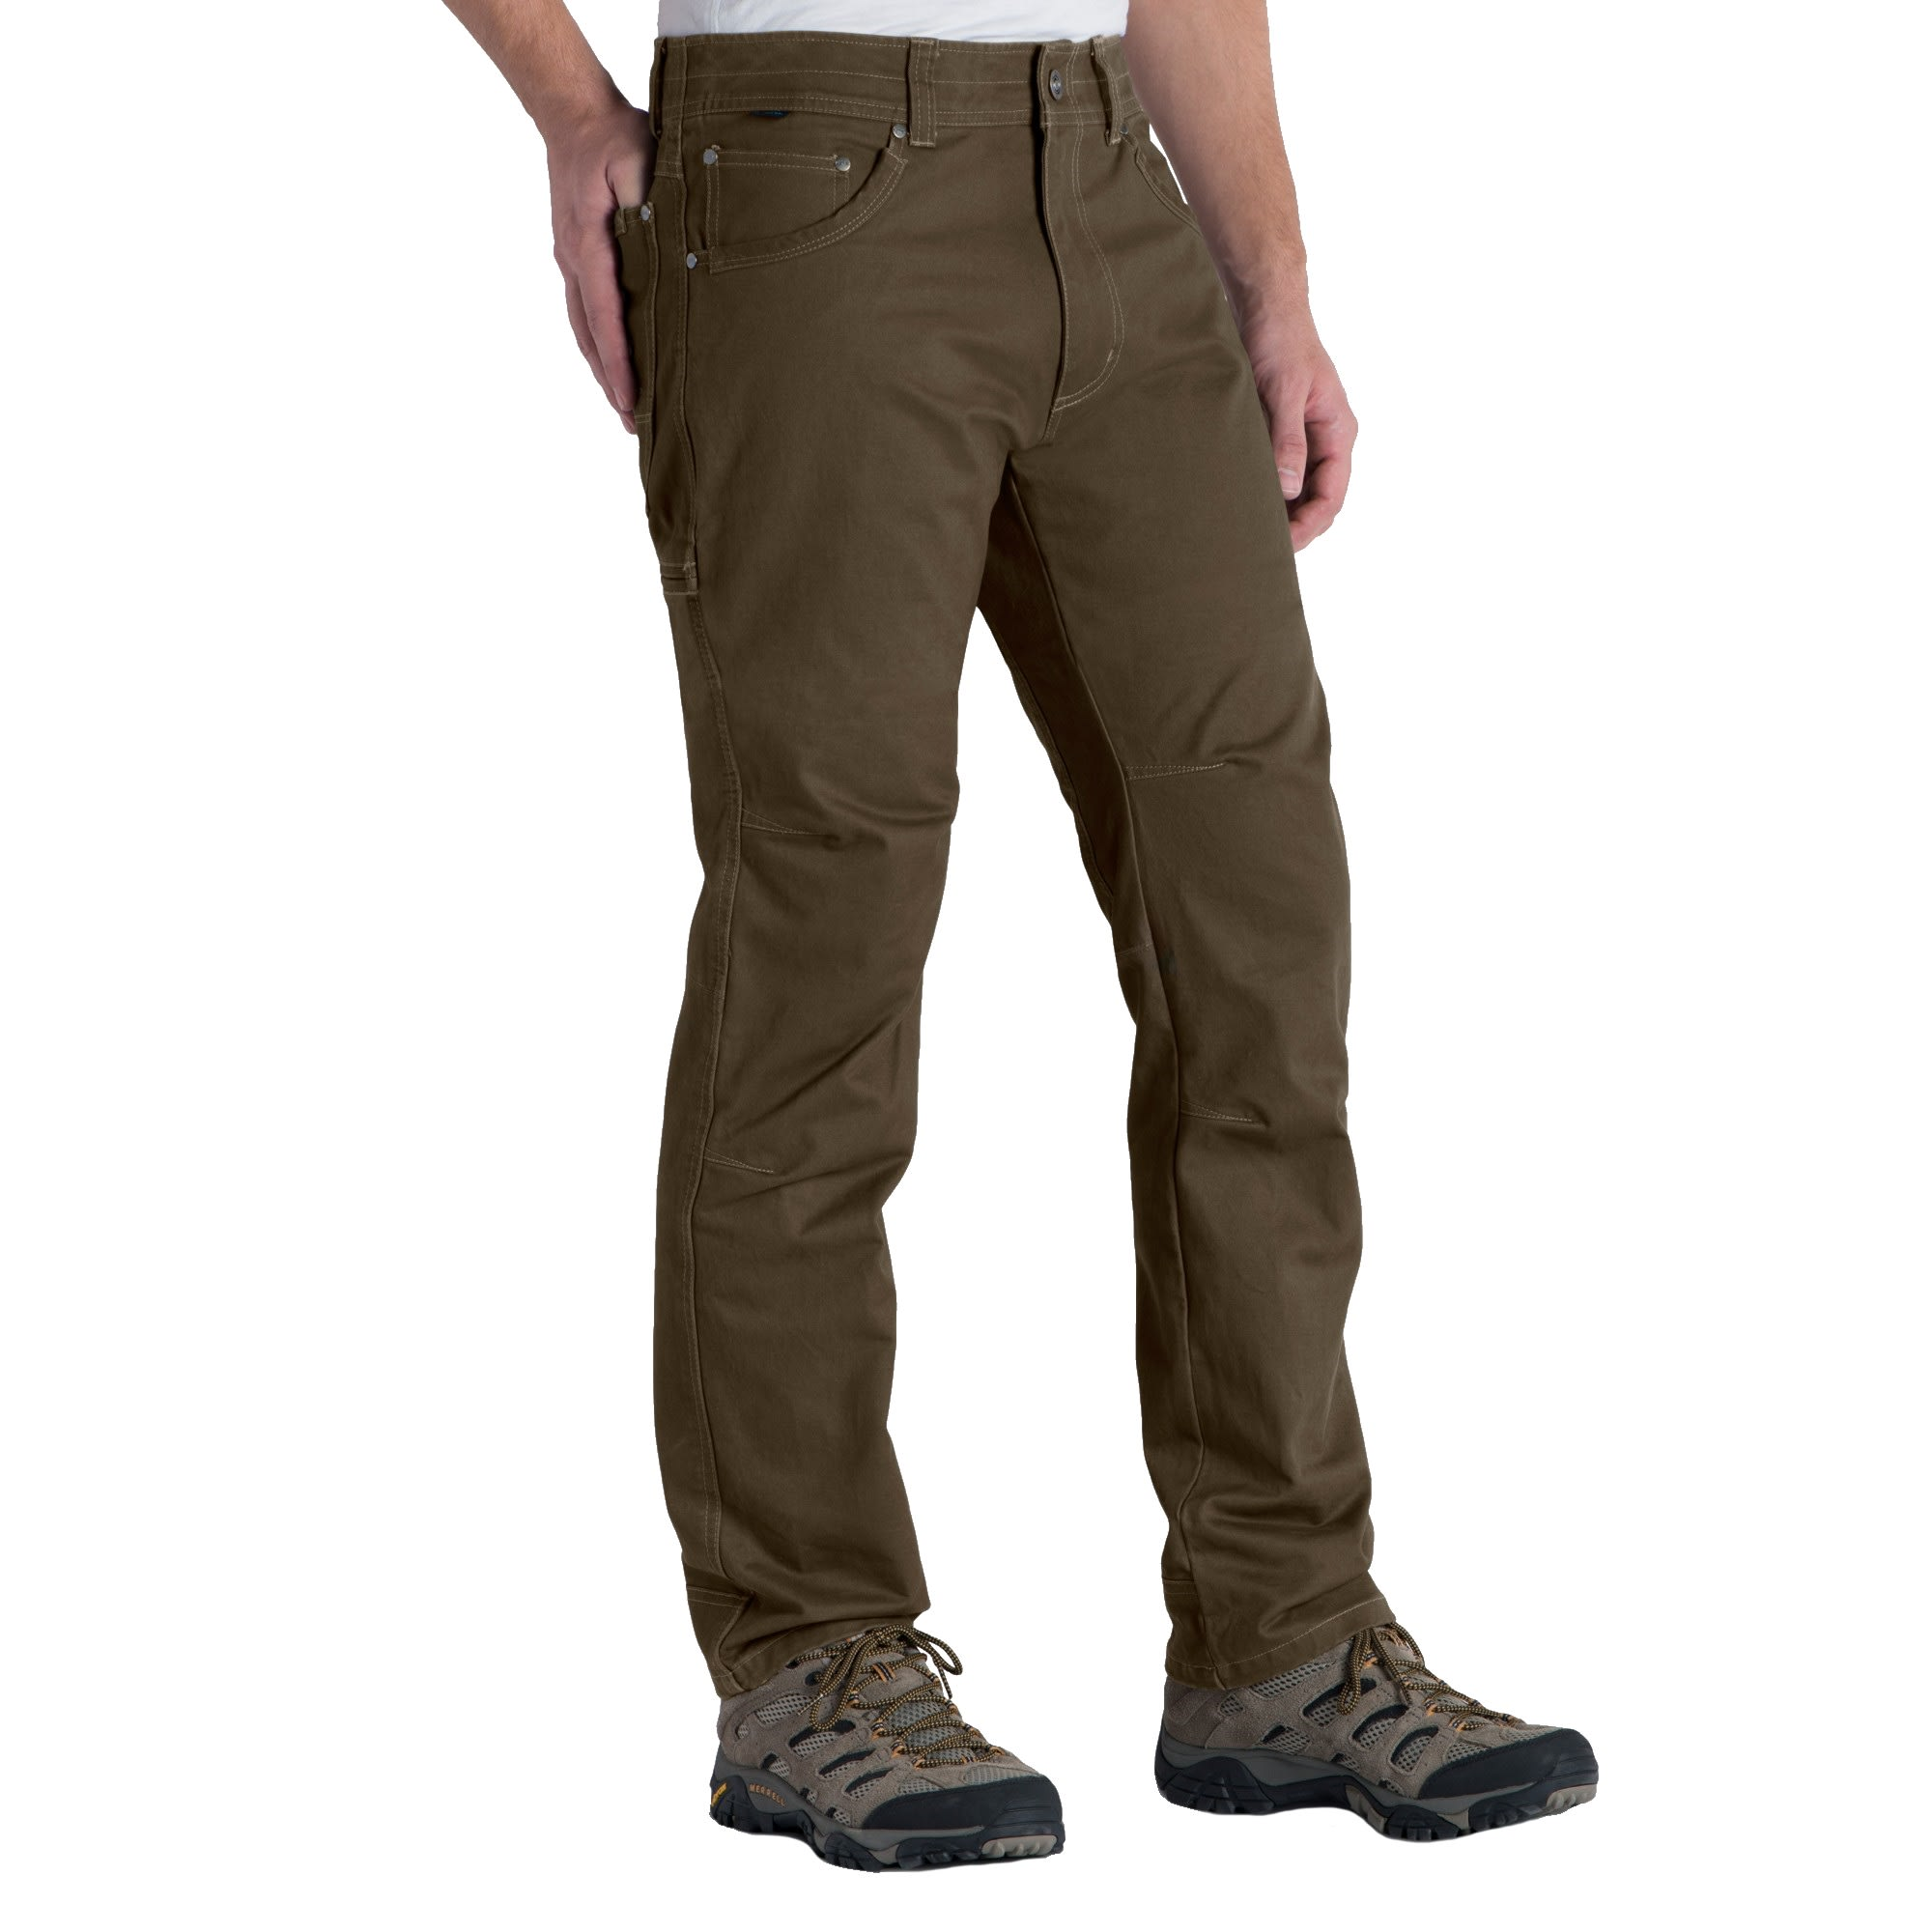 Free Rydr Pants Men's